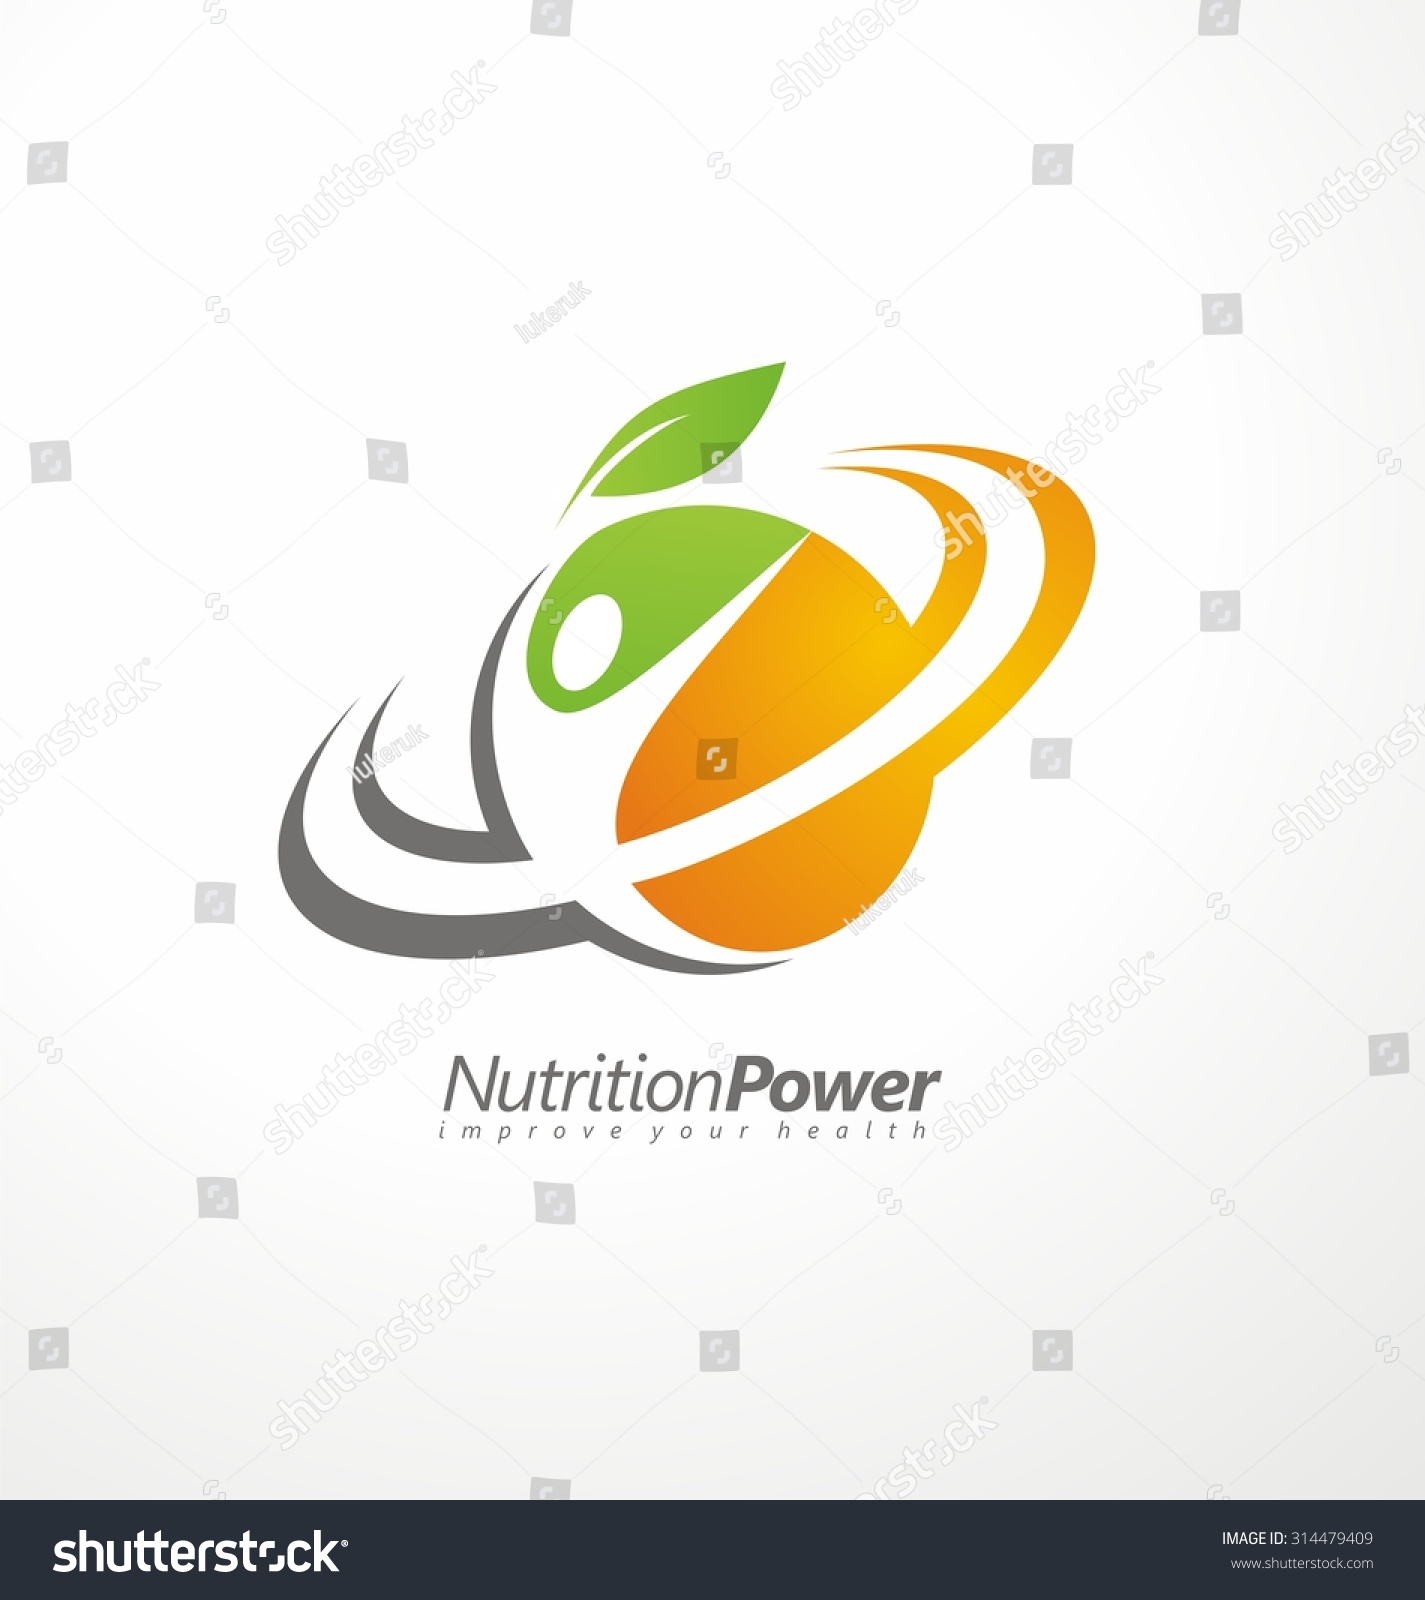 organic health food creative symbol layout nutrition and diet logo design idea fruit and organic - Design Idea